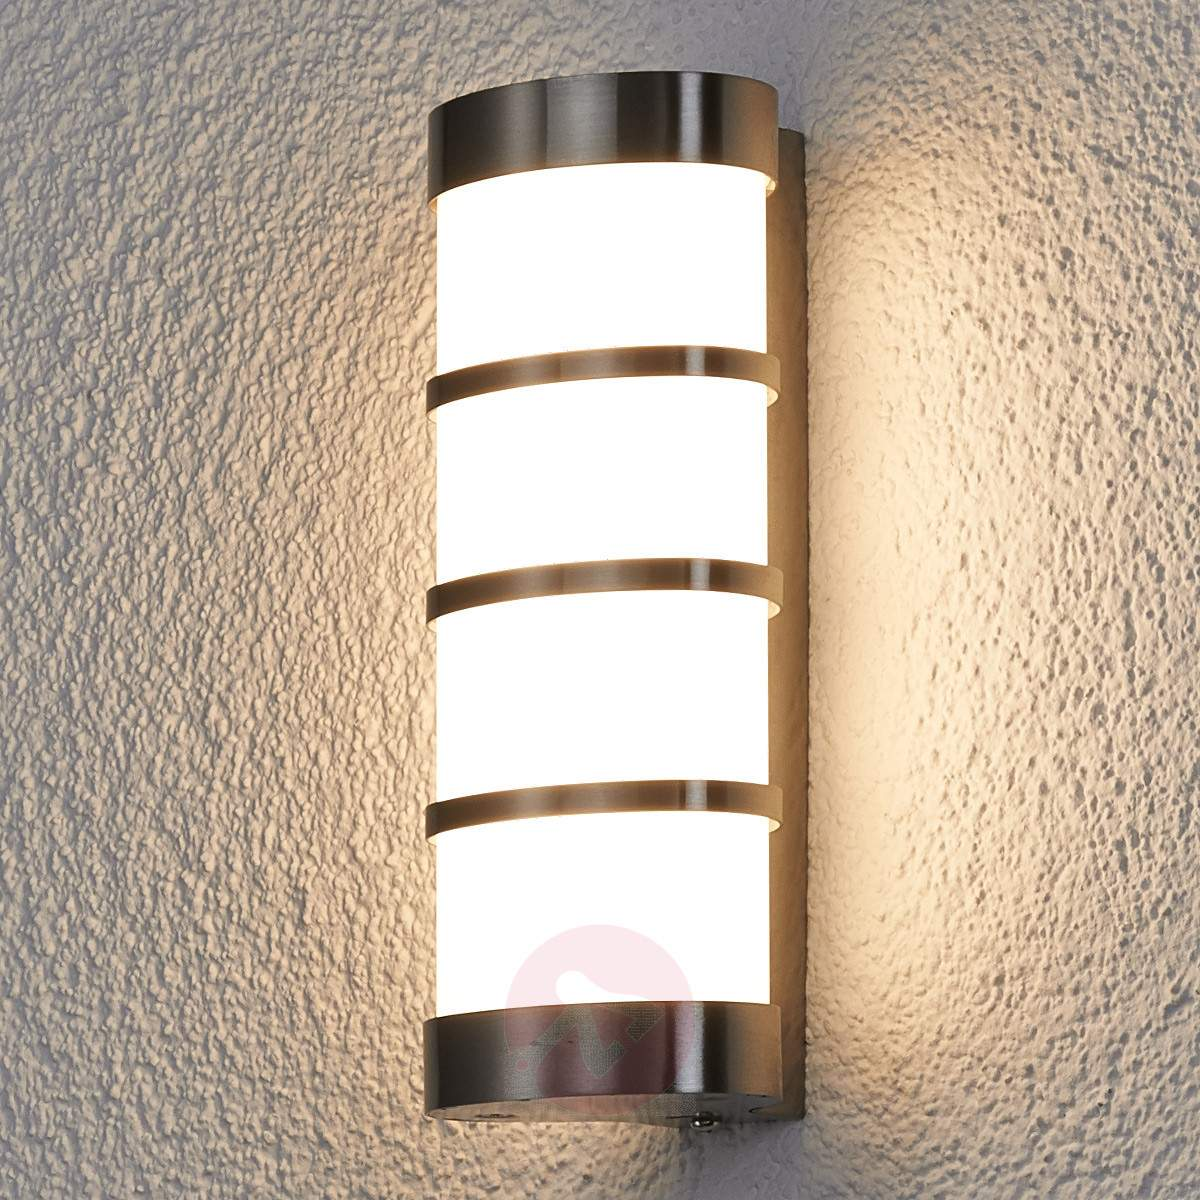 Brightness Offer You The Sense Of Improving Colors And Warmth Life Through Beauty It Produce Use Lights Proactive Ways To Have